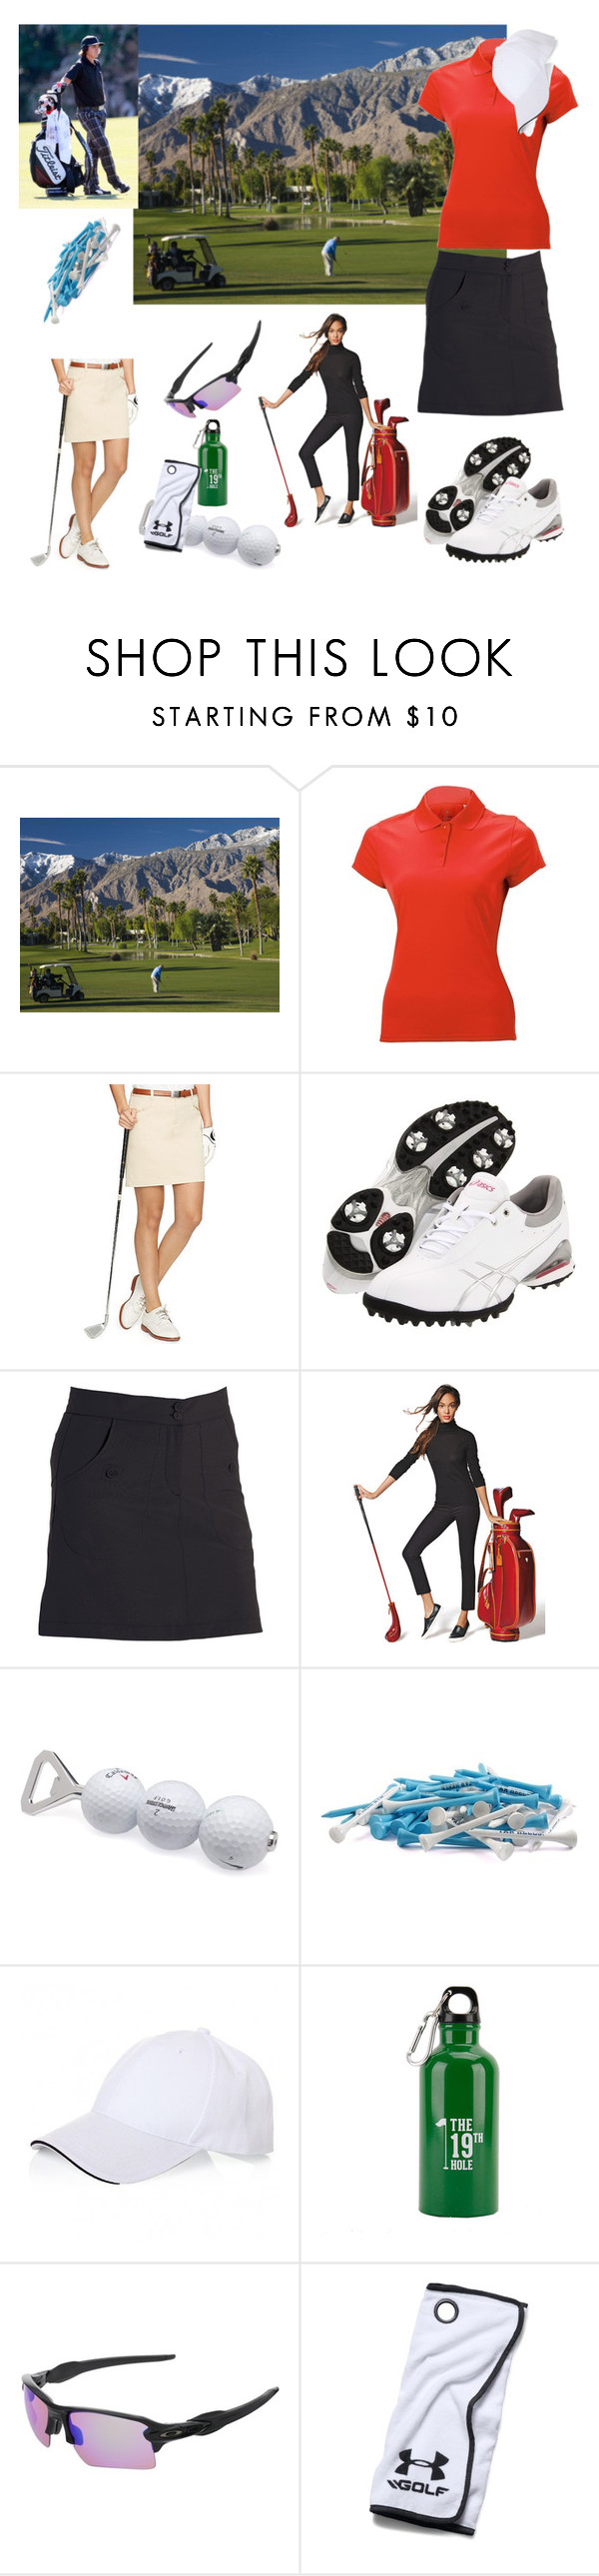 """""""# Golf at its best"""" by smakena ❤ liked on Polyvore featuring Nancy Lopez, Ralph Lauren, Asics, Park, Tokens & Icons, Team Golf, Dibor, Oakley and Under Armour"""